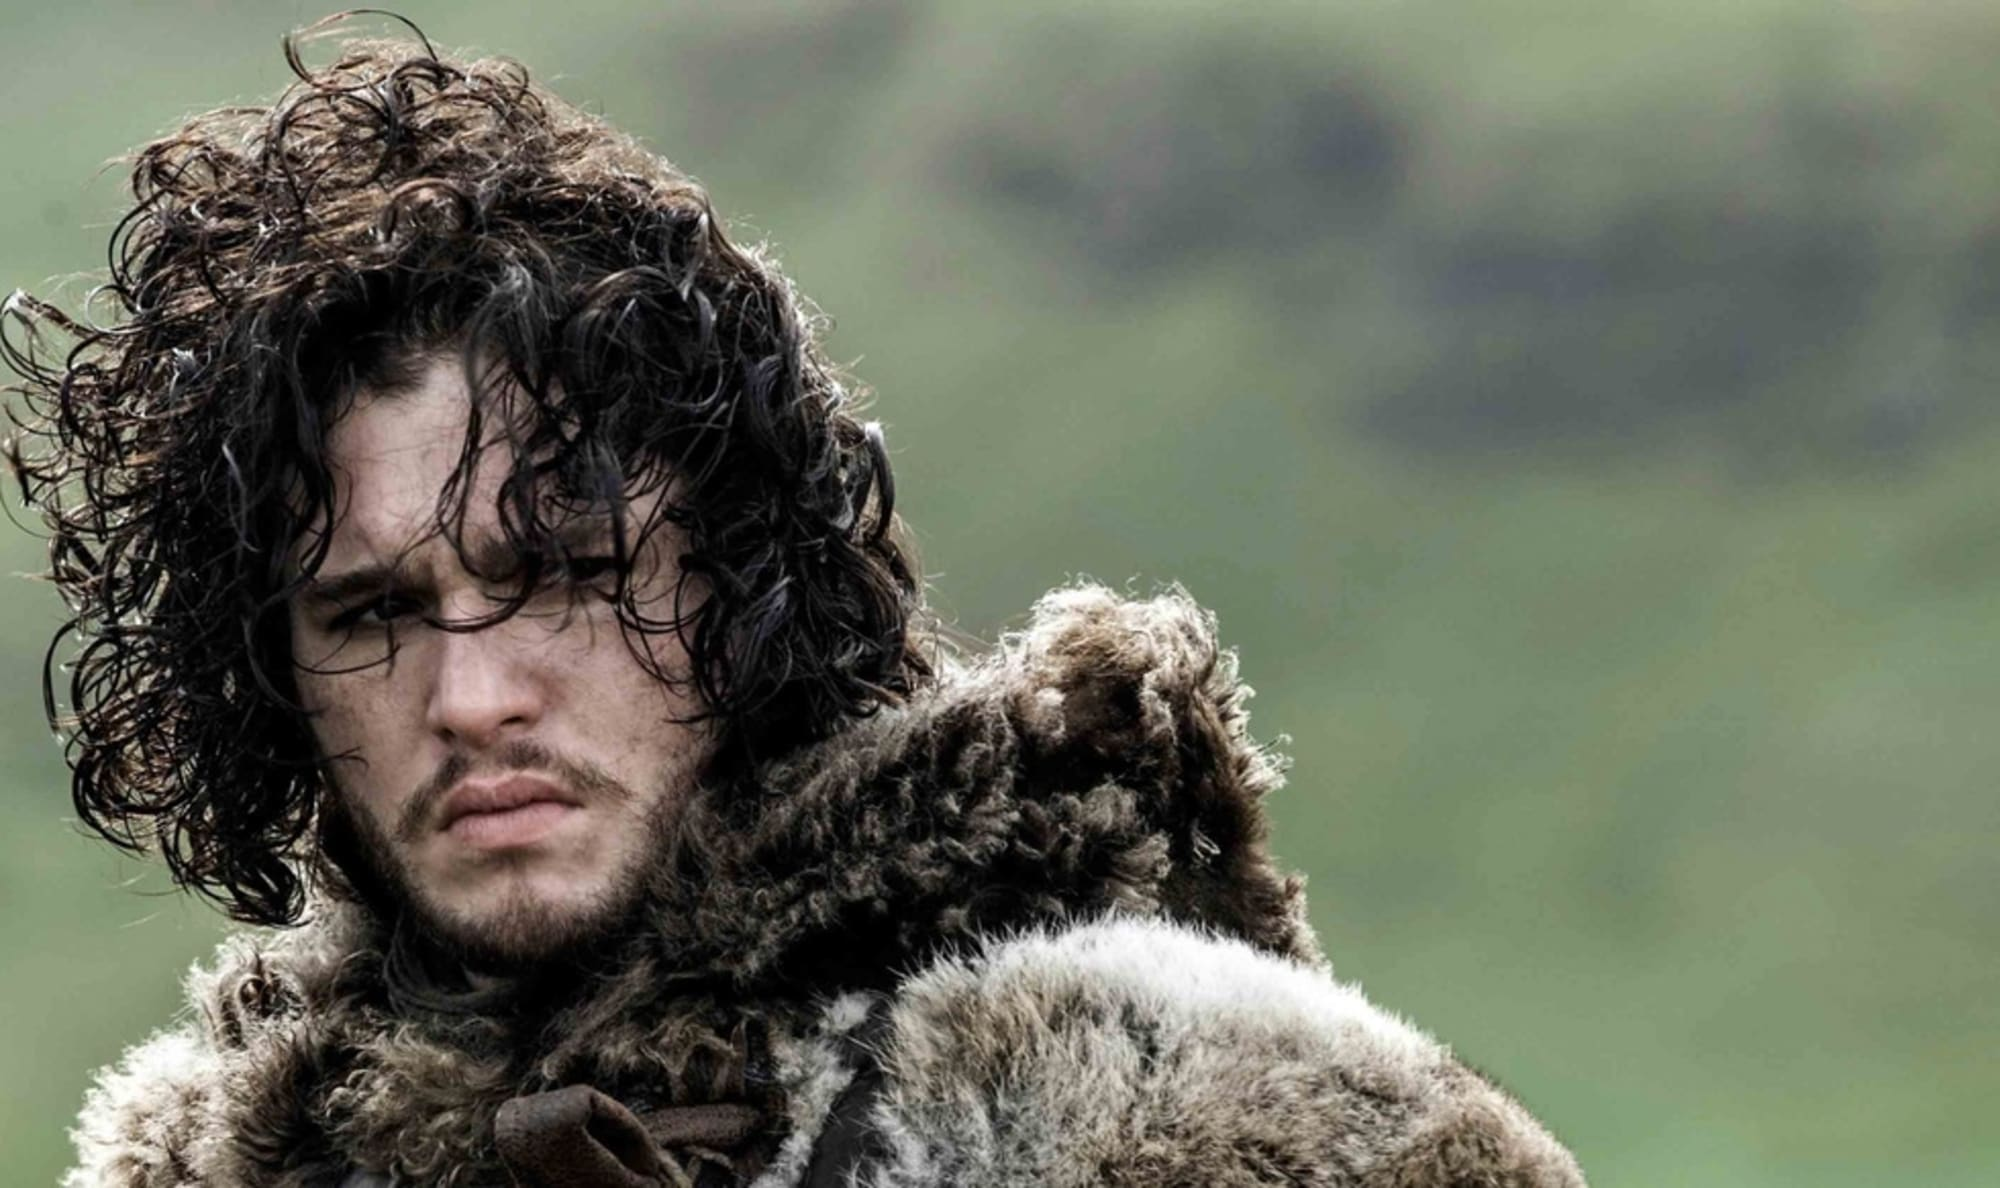 Kit Harington has cut his Game of Thrones hair—Join us in mourning